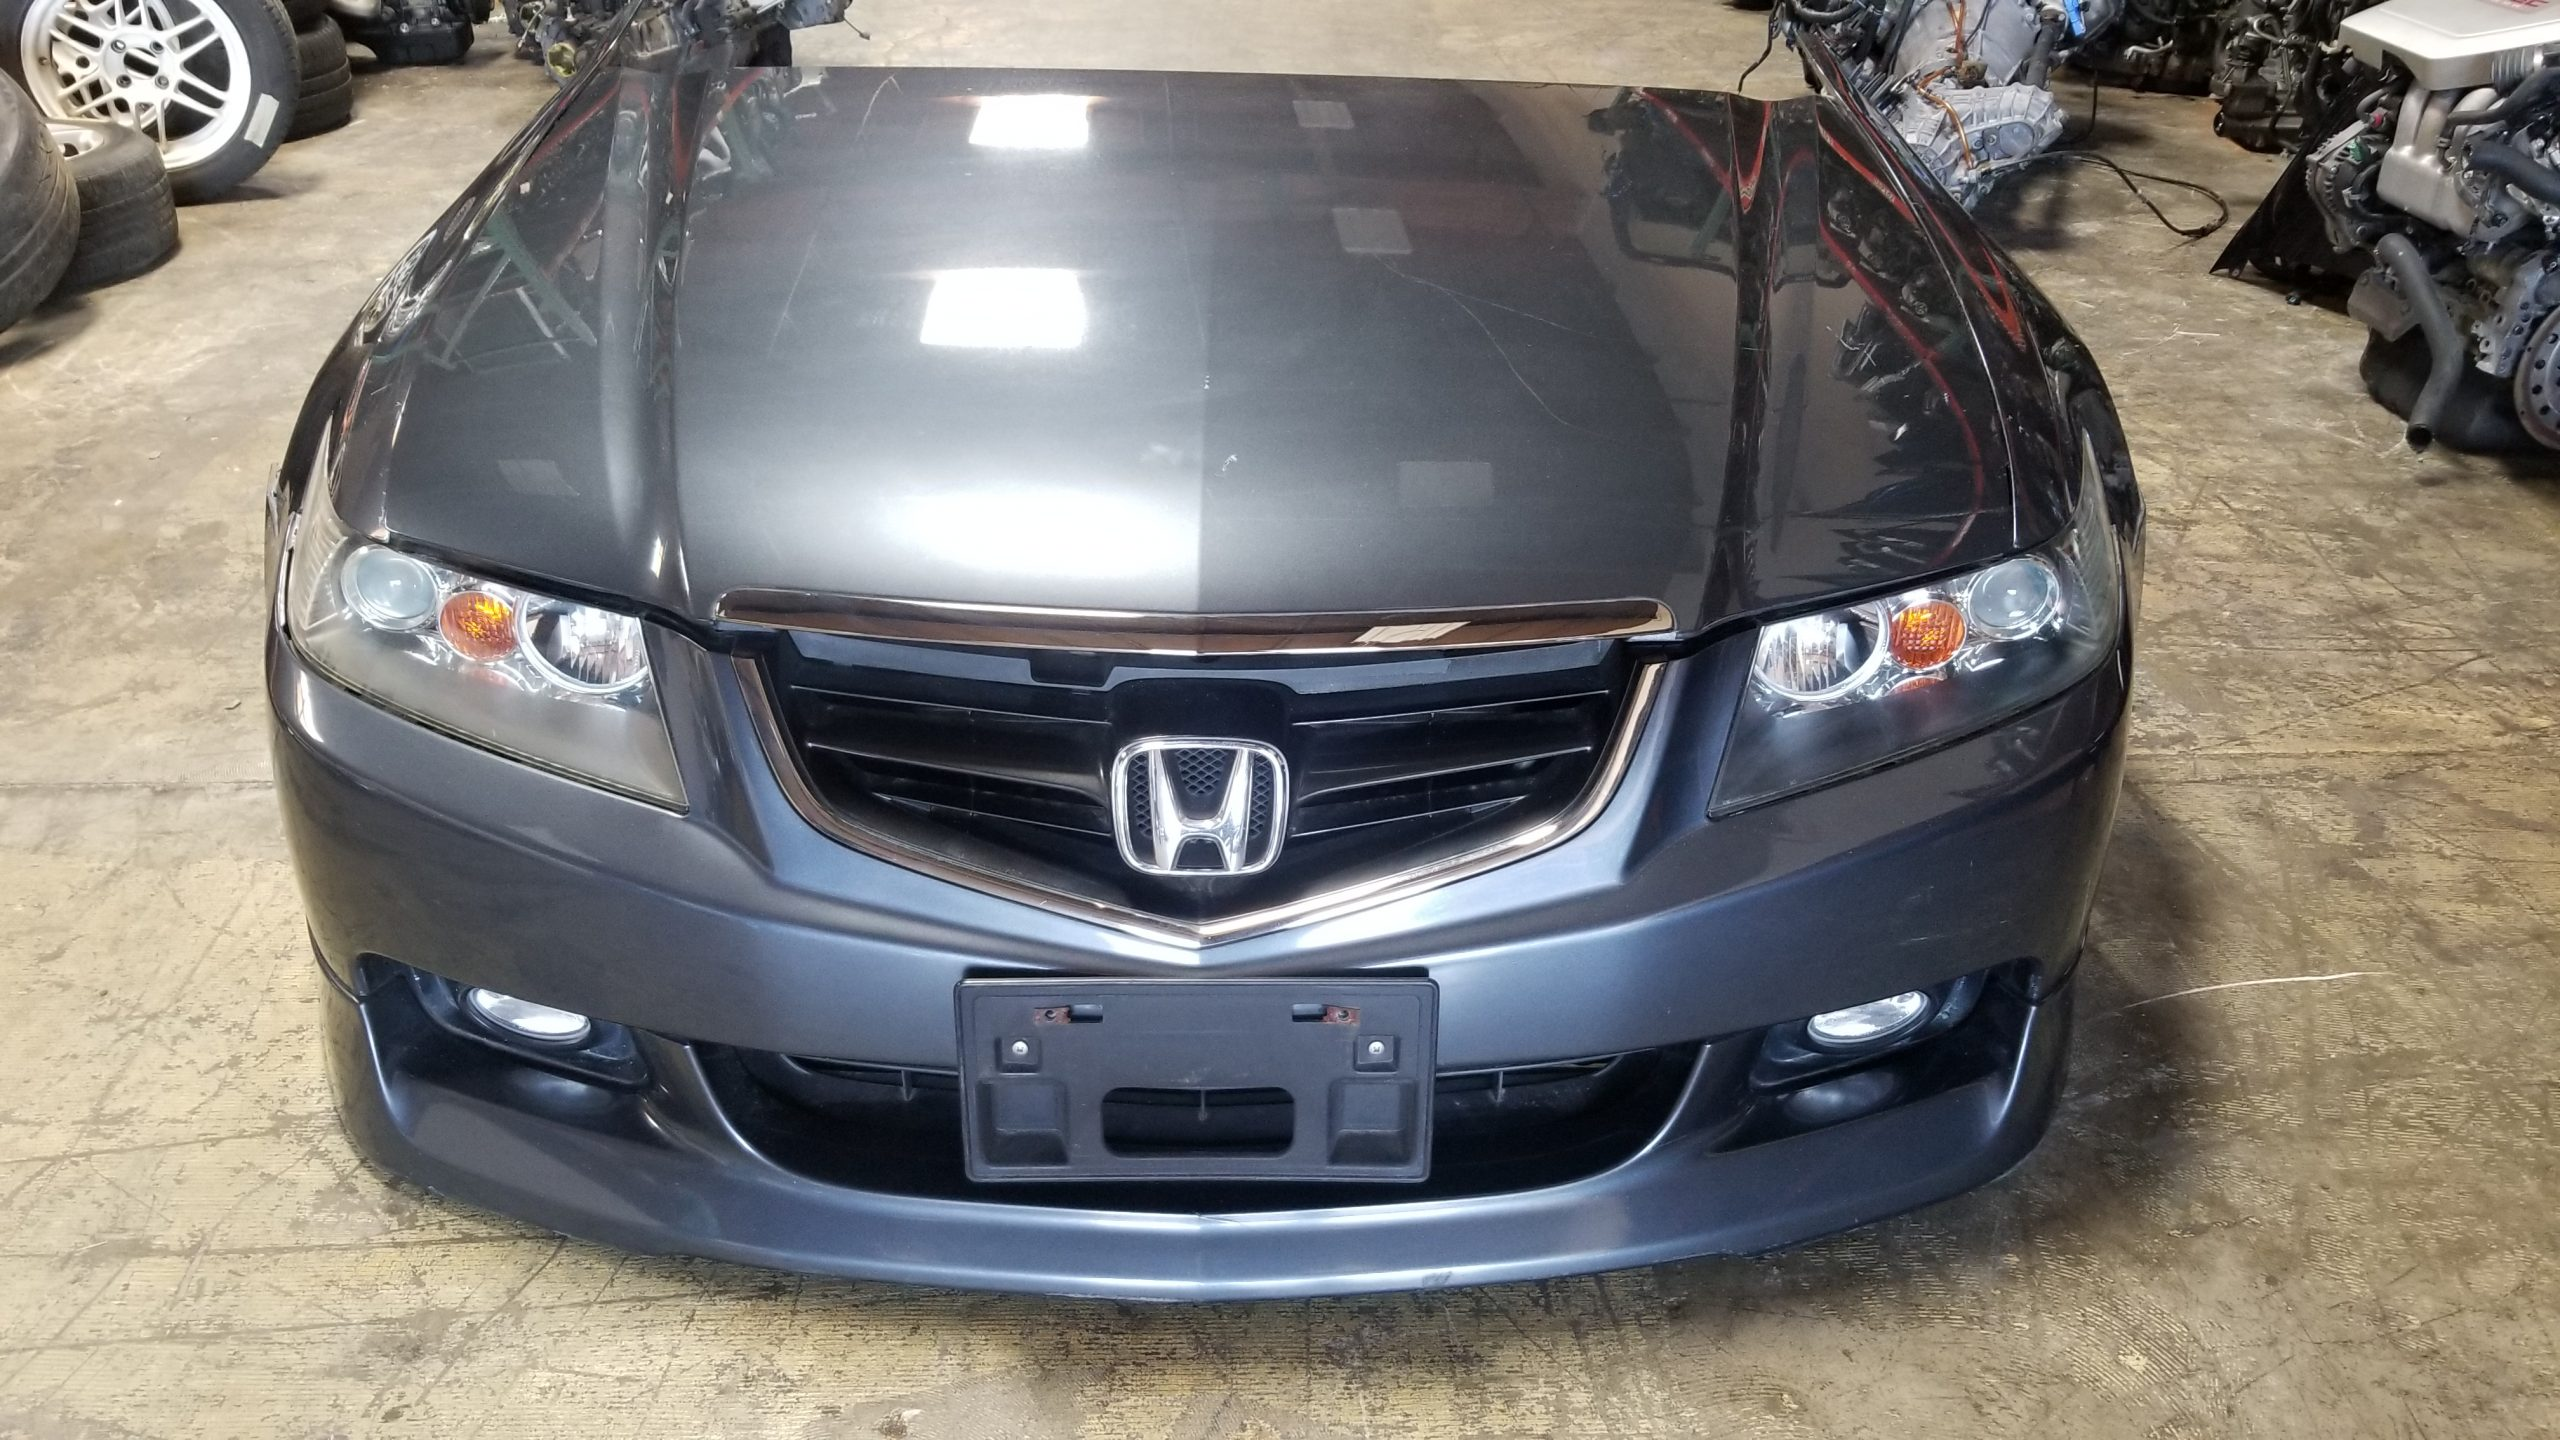 Tsx 2004 2007 Acura Tsx Jdm Front End Conversion Nose Cut Cl7 Honda Accord Grey 4dr Jdm Of San Diego